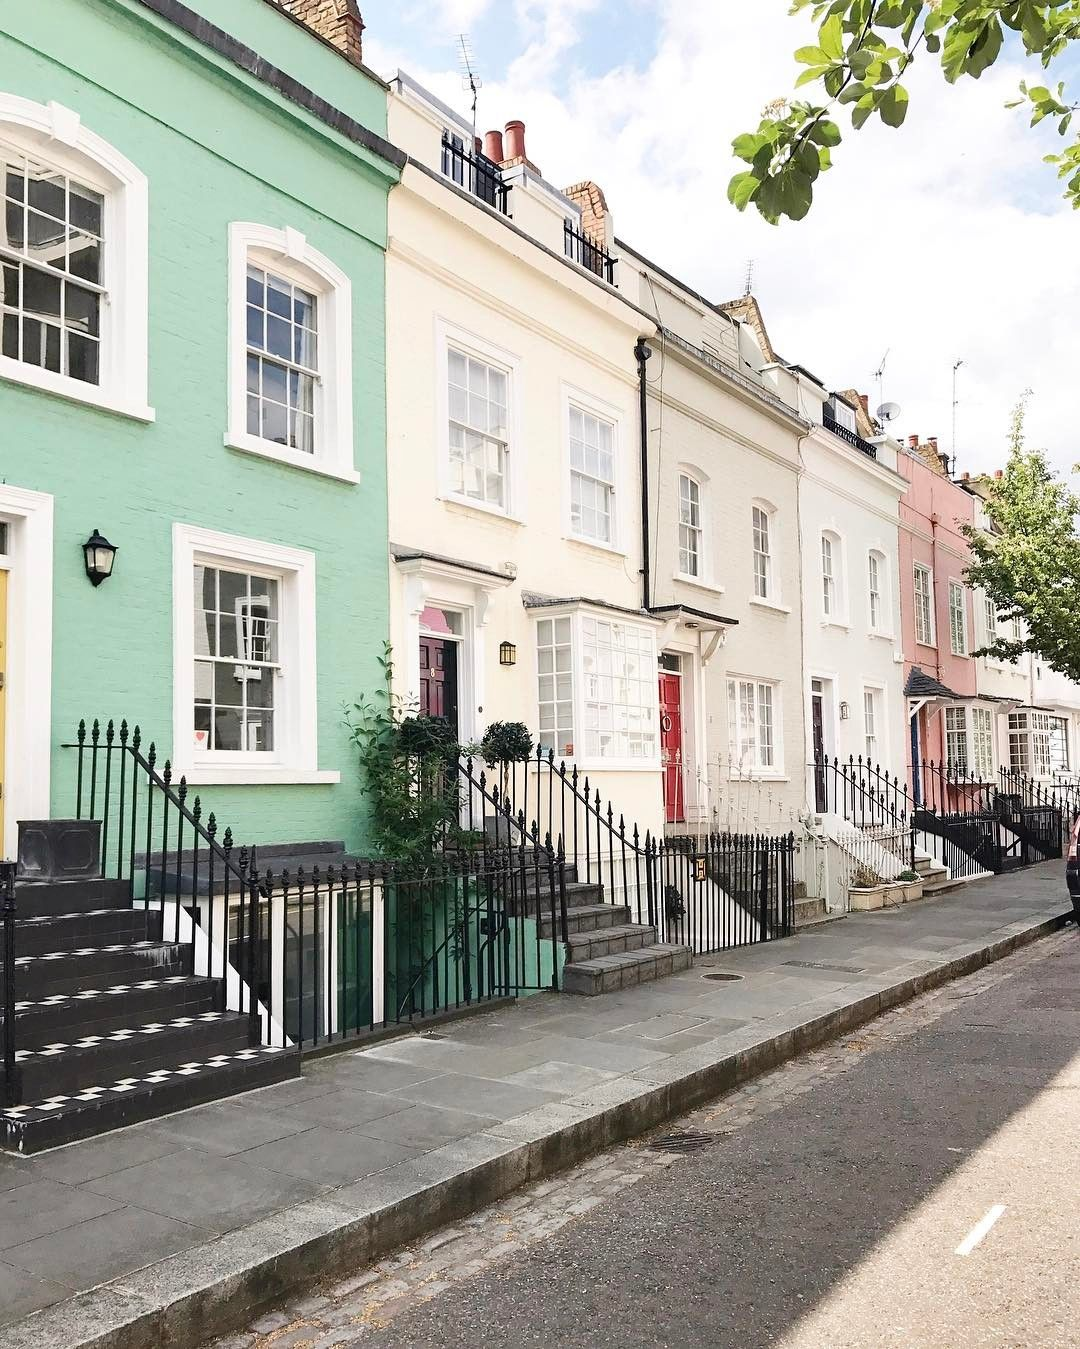 London Apartments Exterior: Pretty Pastel Houses Imagine Actually Living In One Of